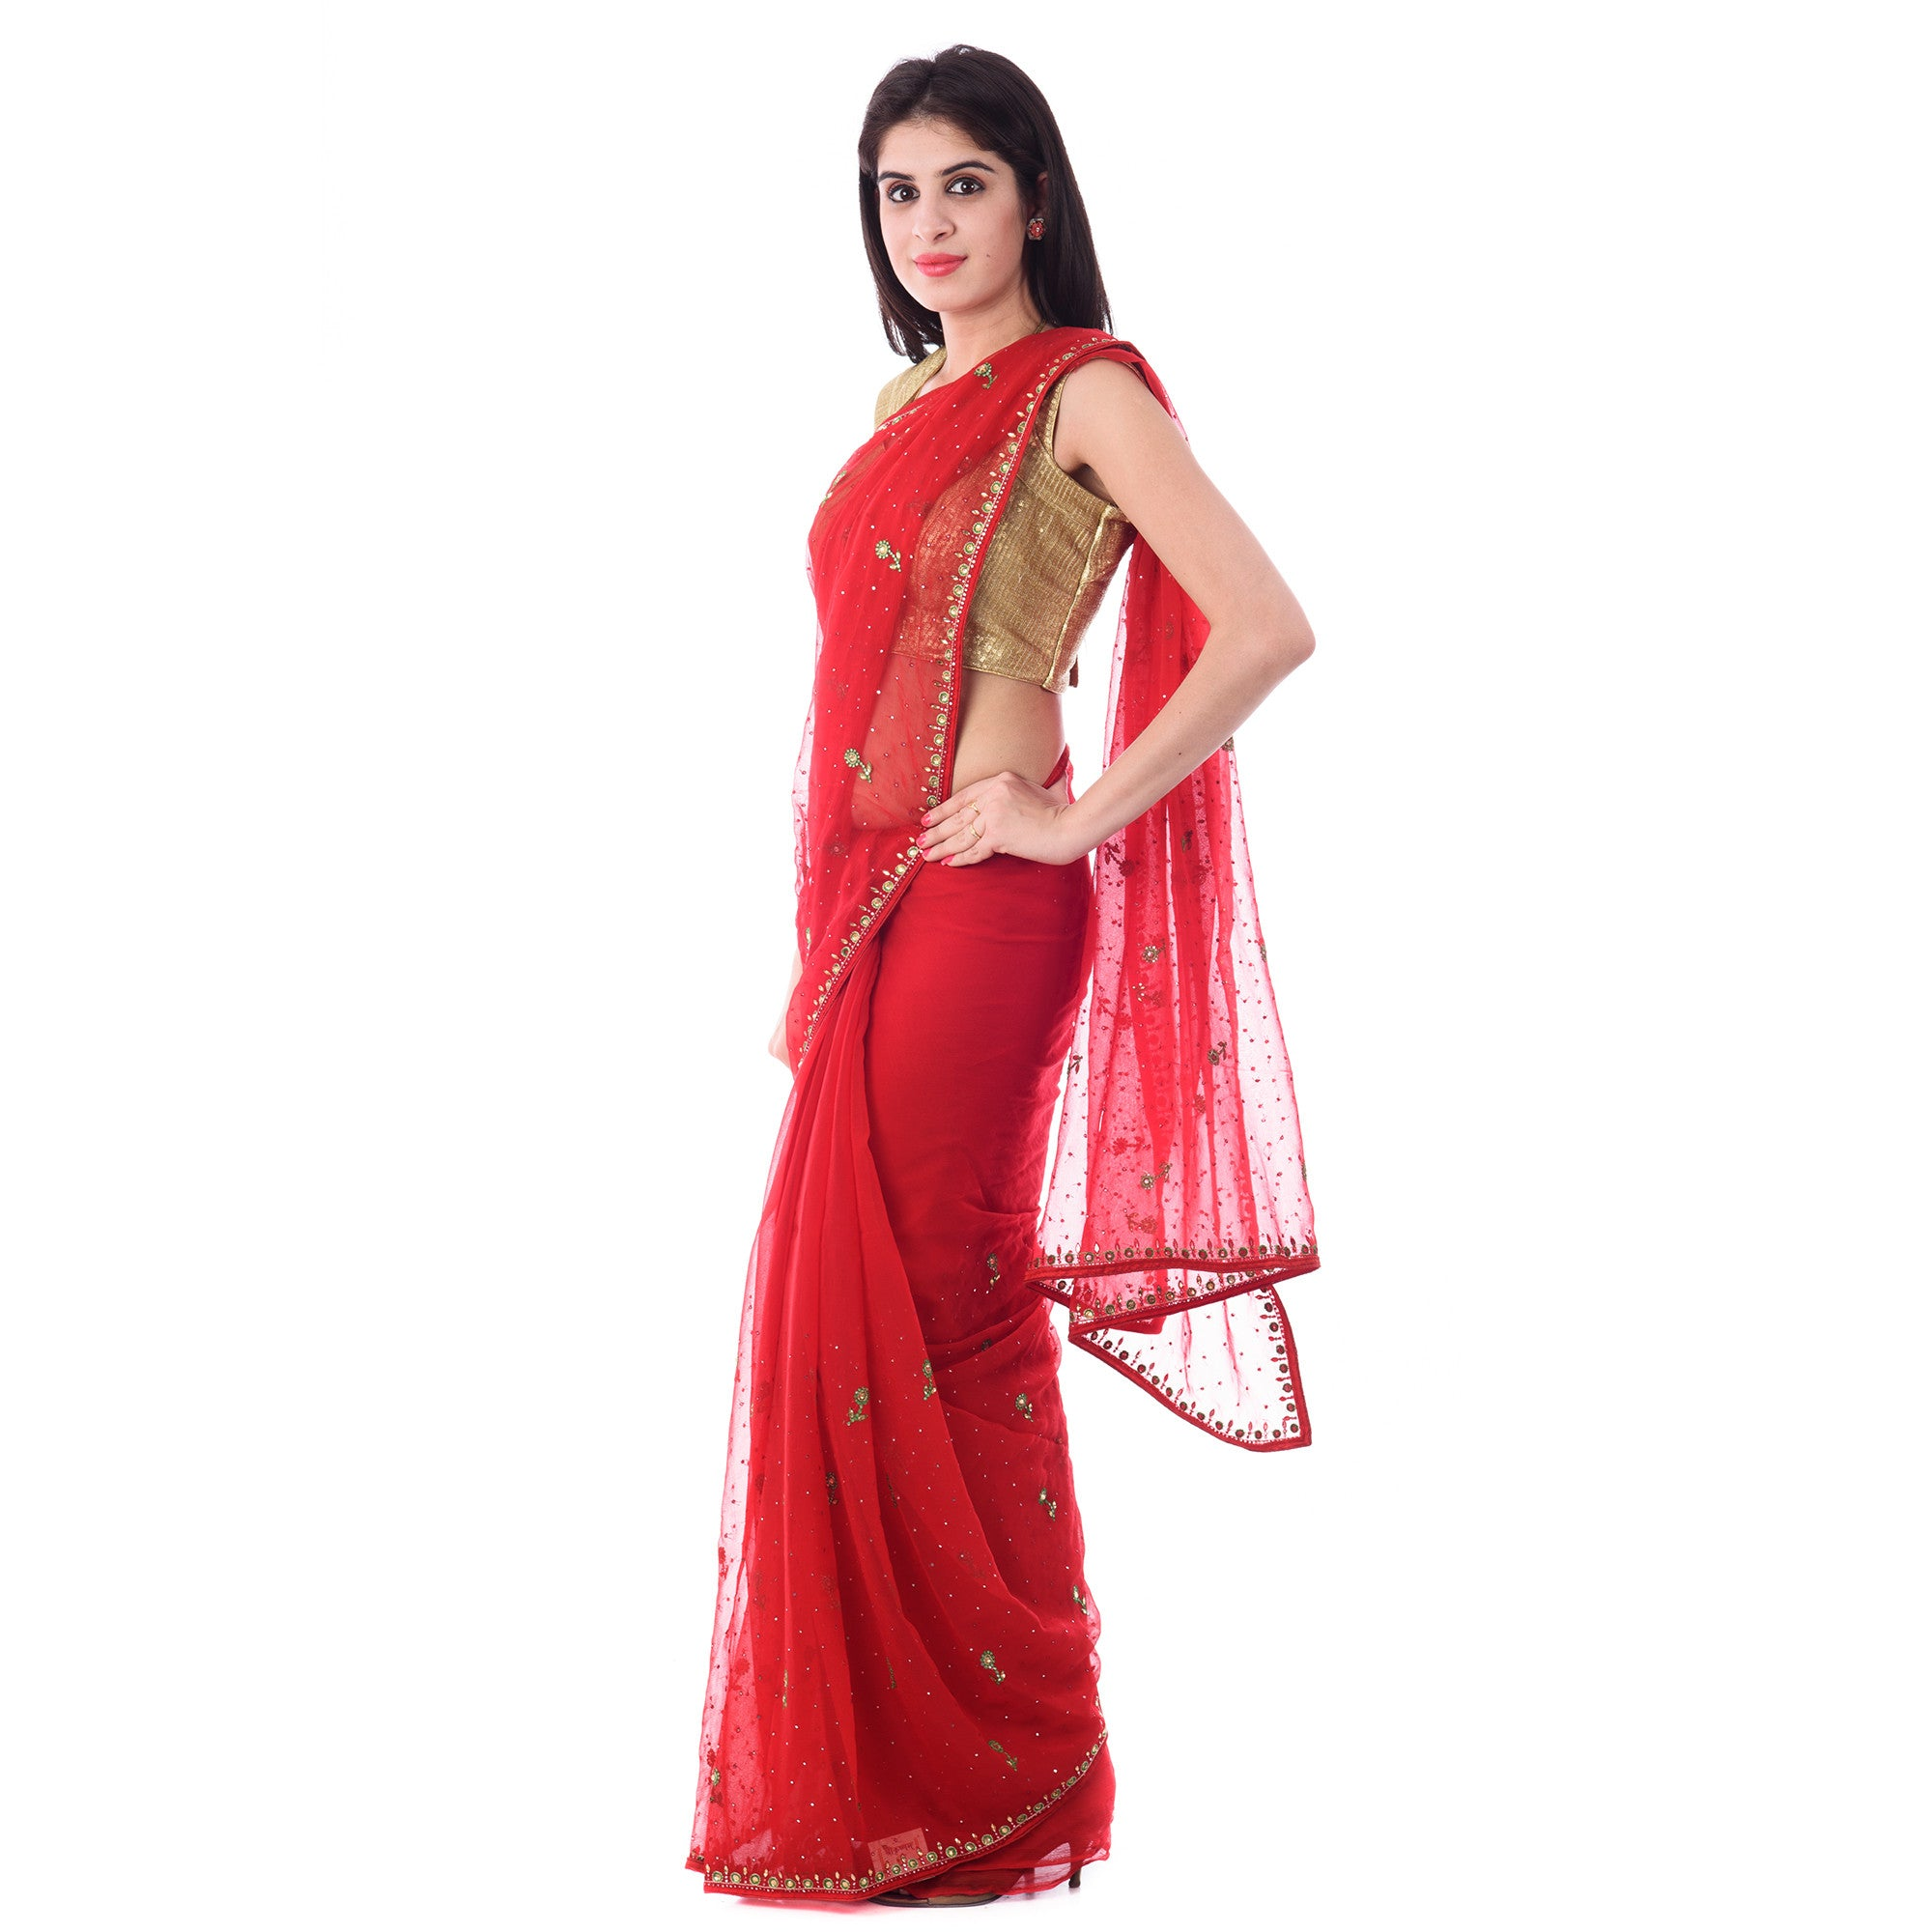 Red Chiffion Mirror and Resham Work Saree With Blouse Piece - Shri Krishnam